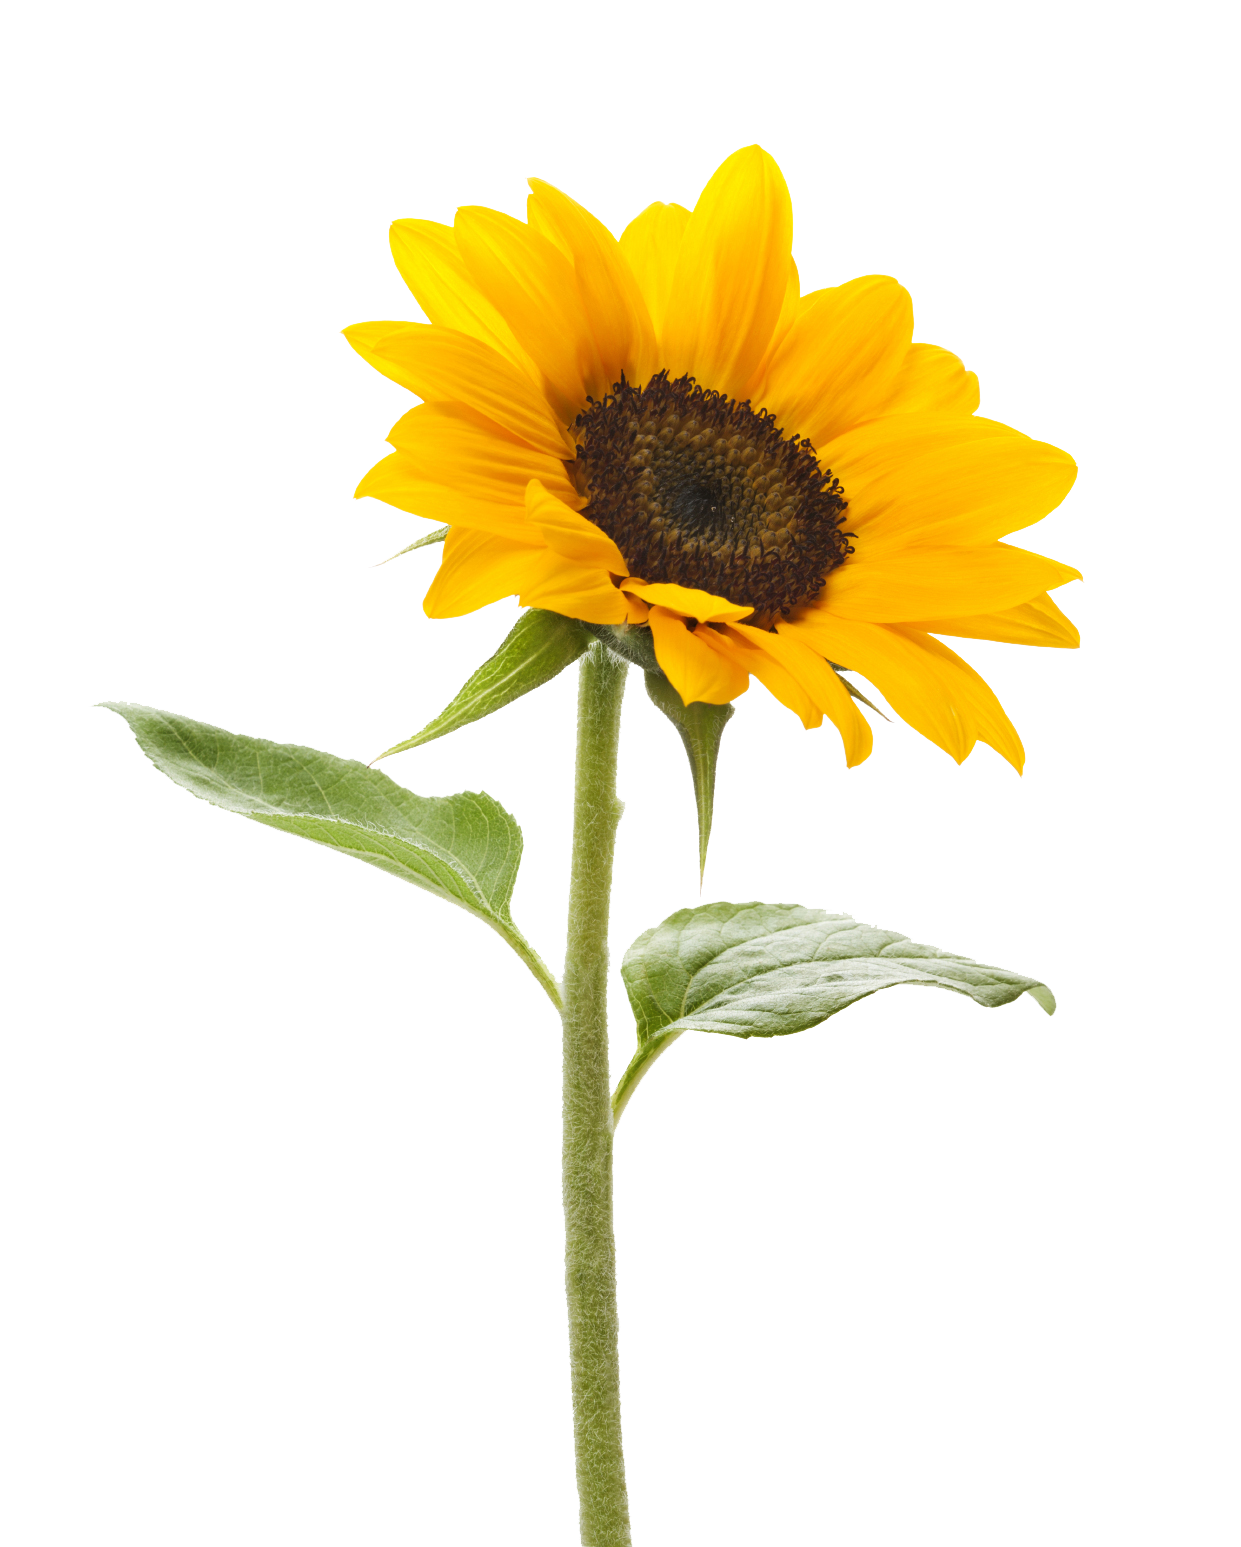 royalty free Sunflowers clipart transparent background. Sunflower png images free